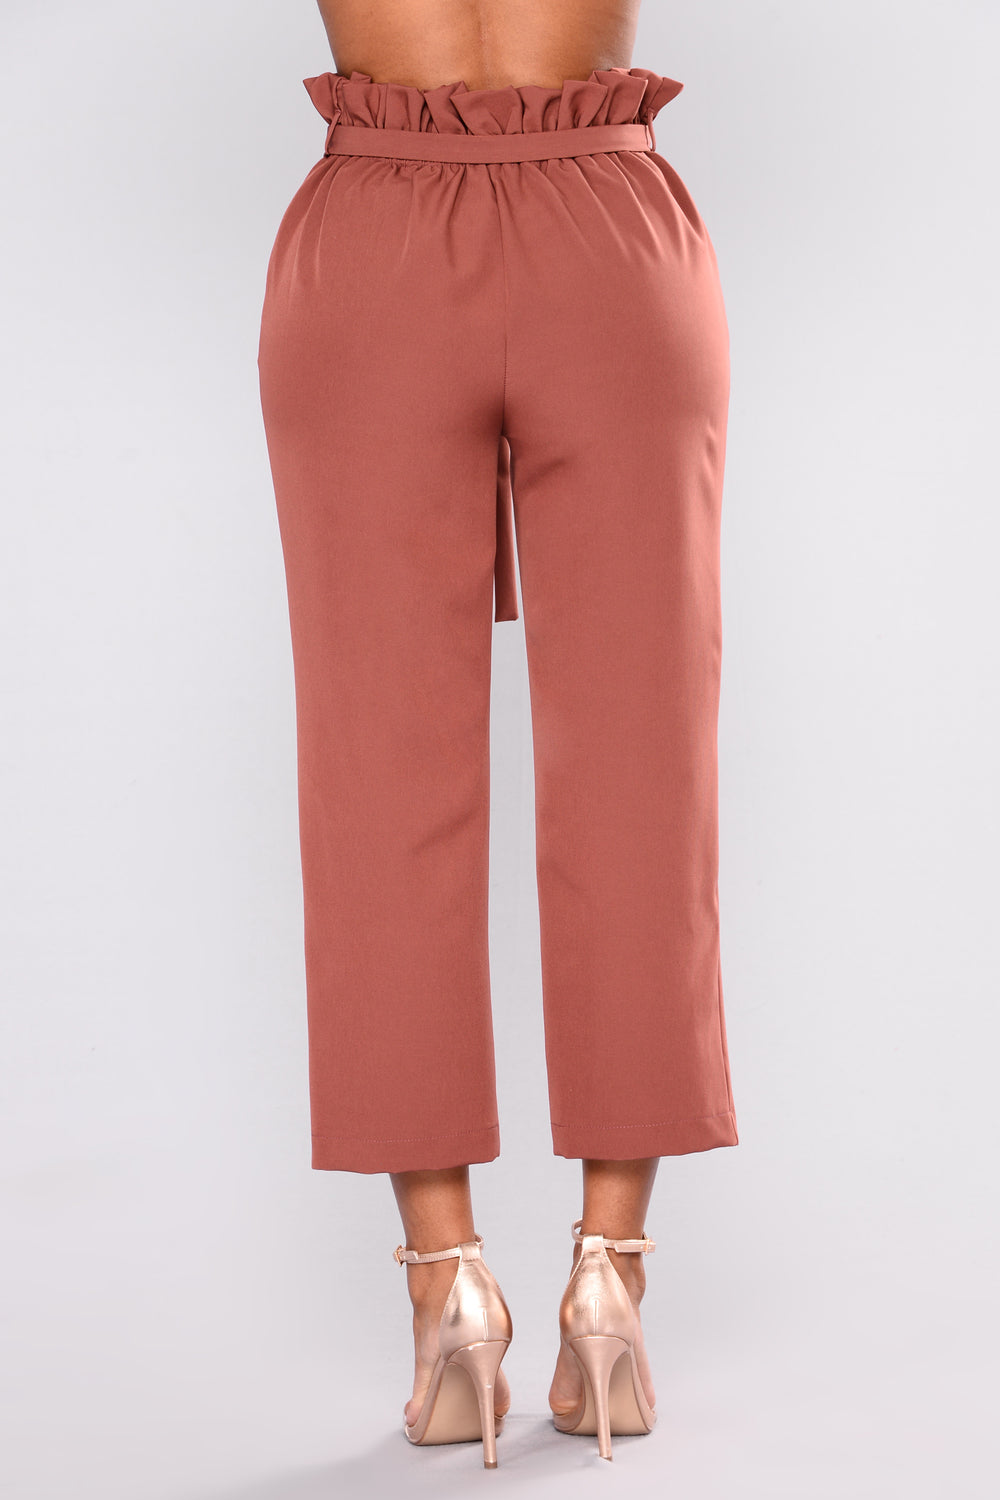 High Limit Waist Tie Pants -  Marsala